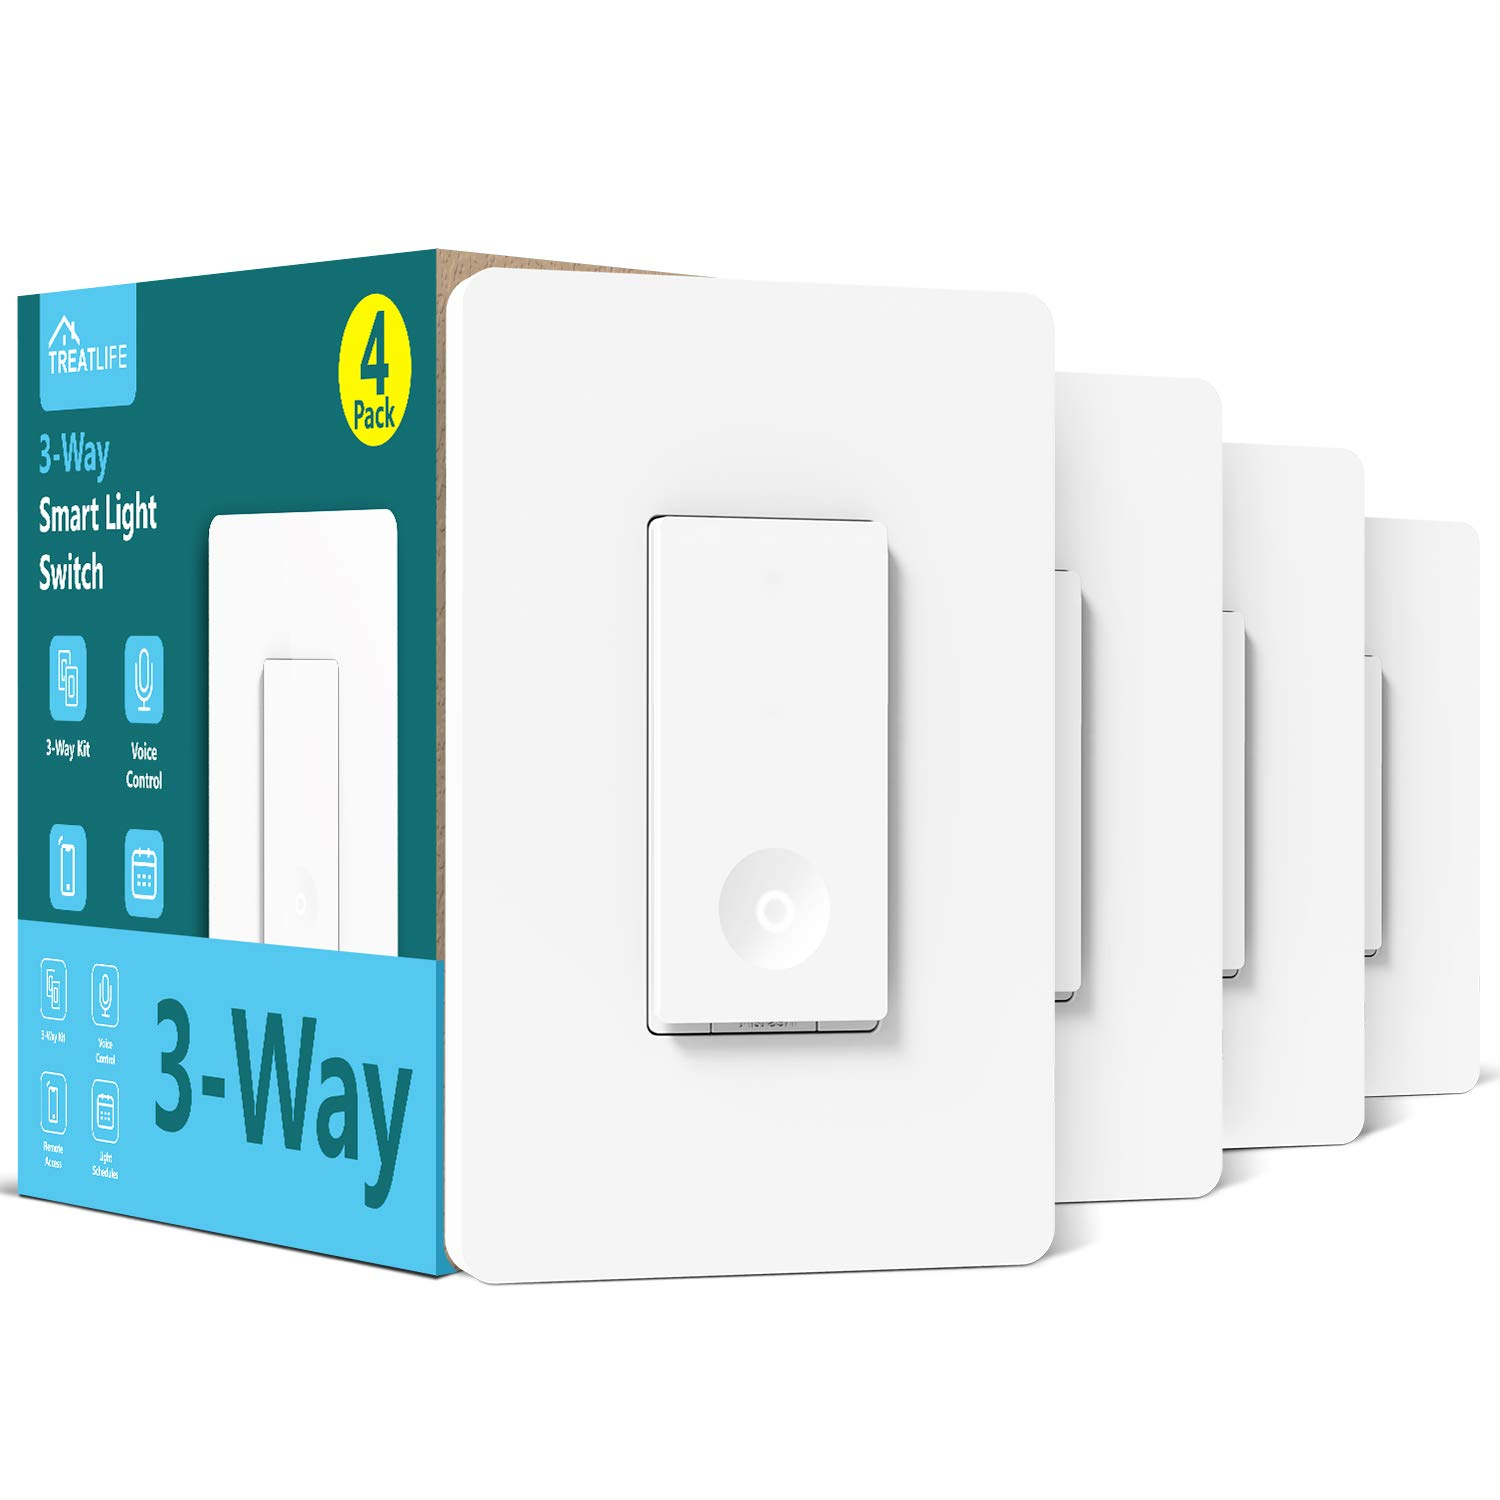 3-way Smart Light Switch,Neutral Wire Required,Treatlife WiFi Light Switch Single Pole/3-way Switch Works With Alexa, Google Assistant, Remote Control, ETL, Schedule, No Hub Required, 4 PACK